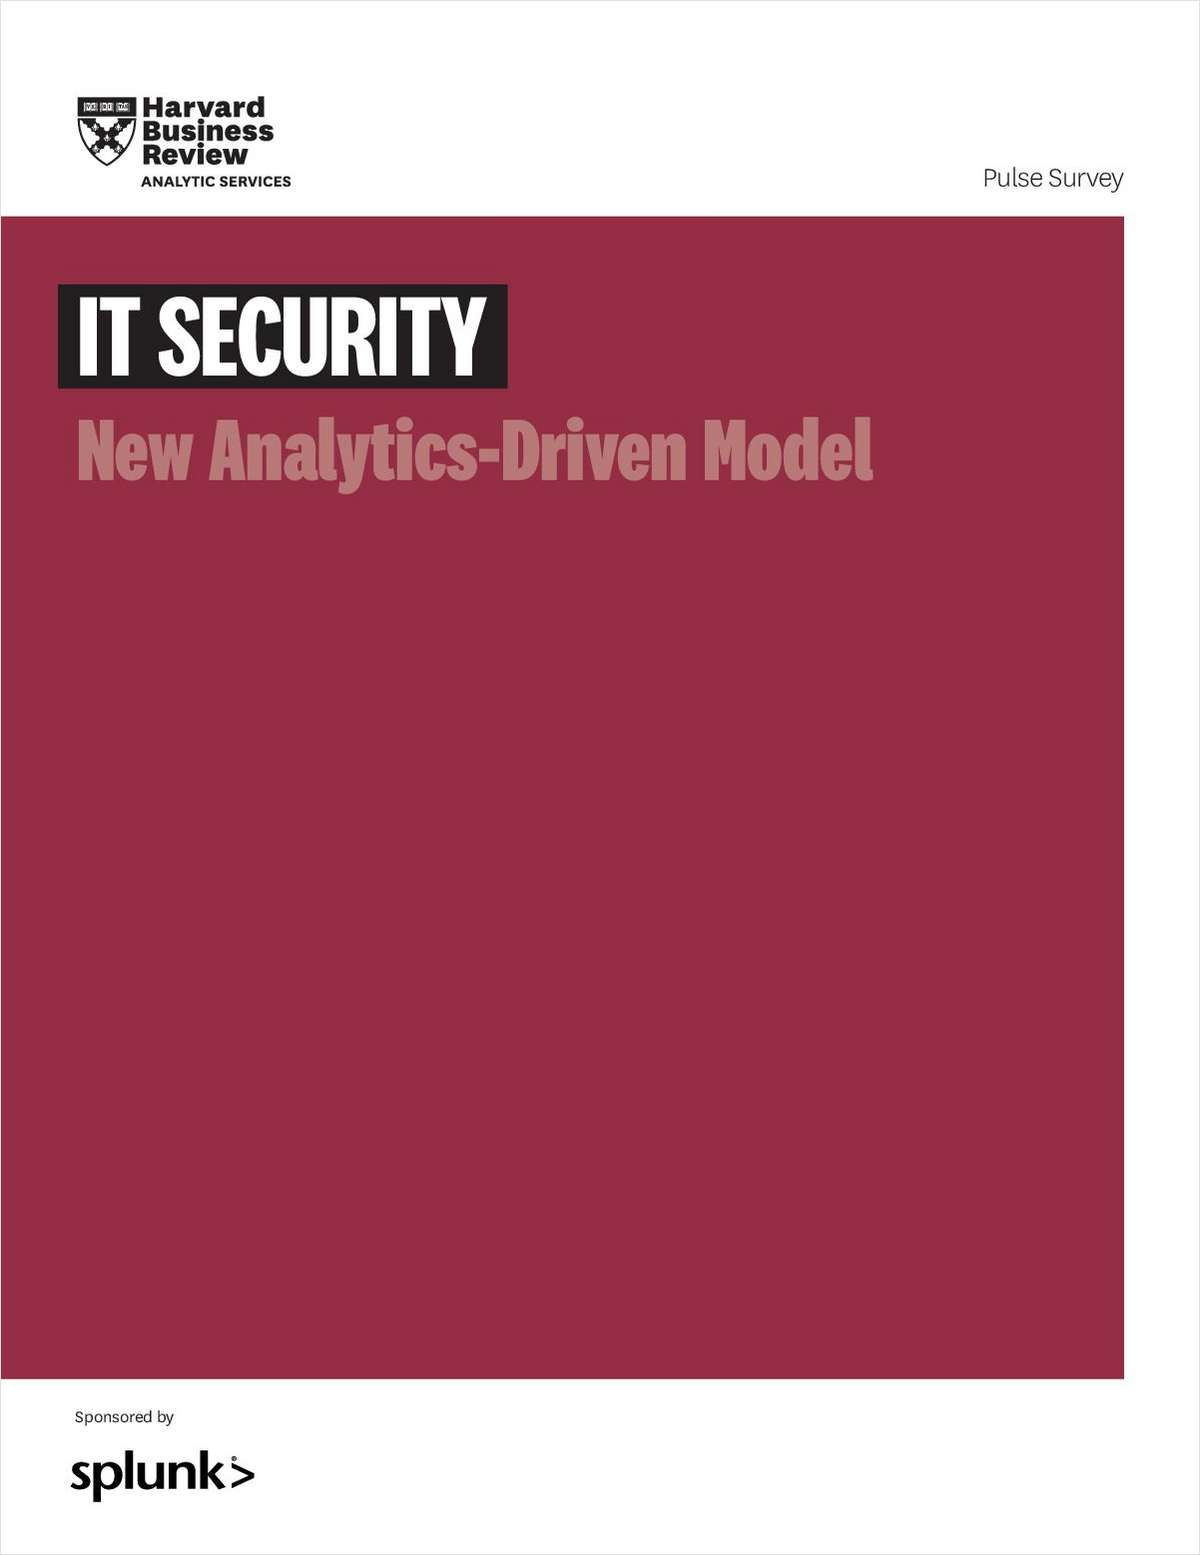 IT Security: New Analytics-Driven Model